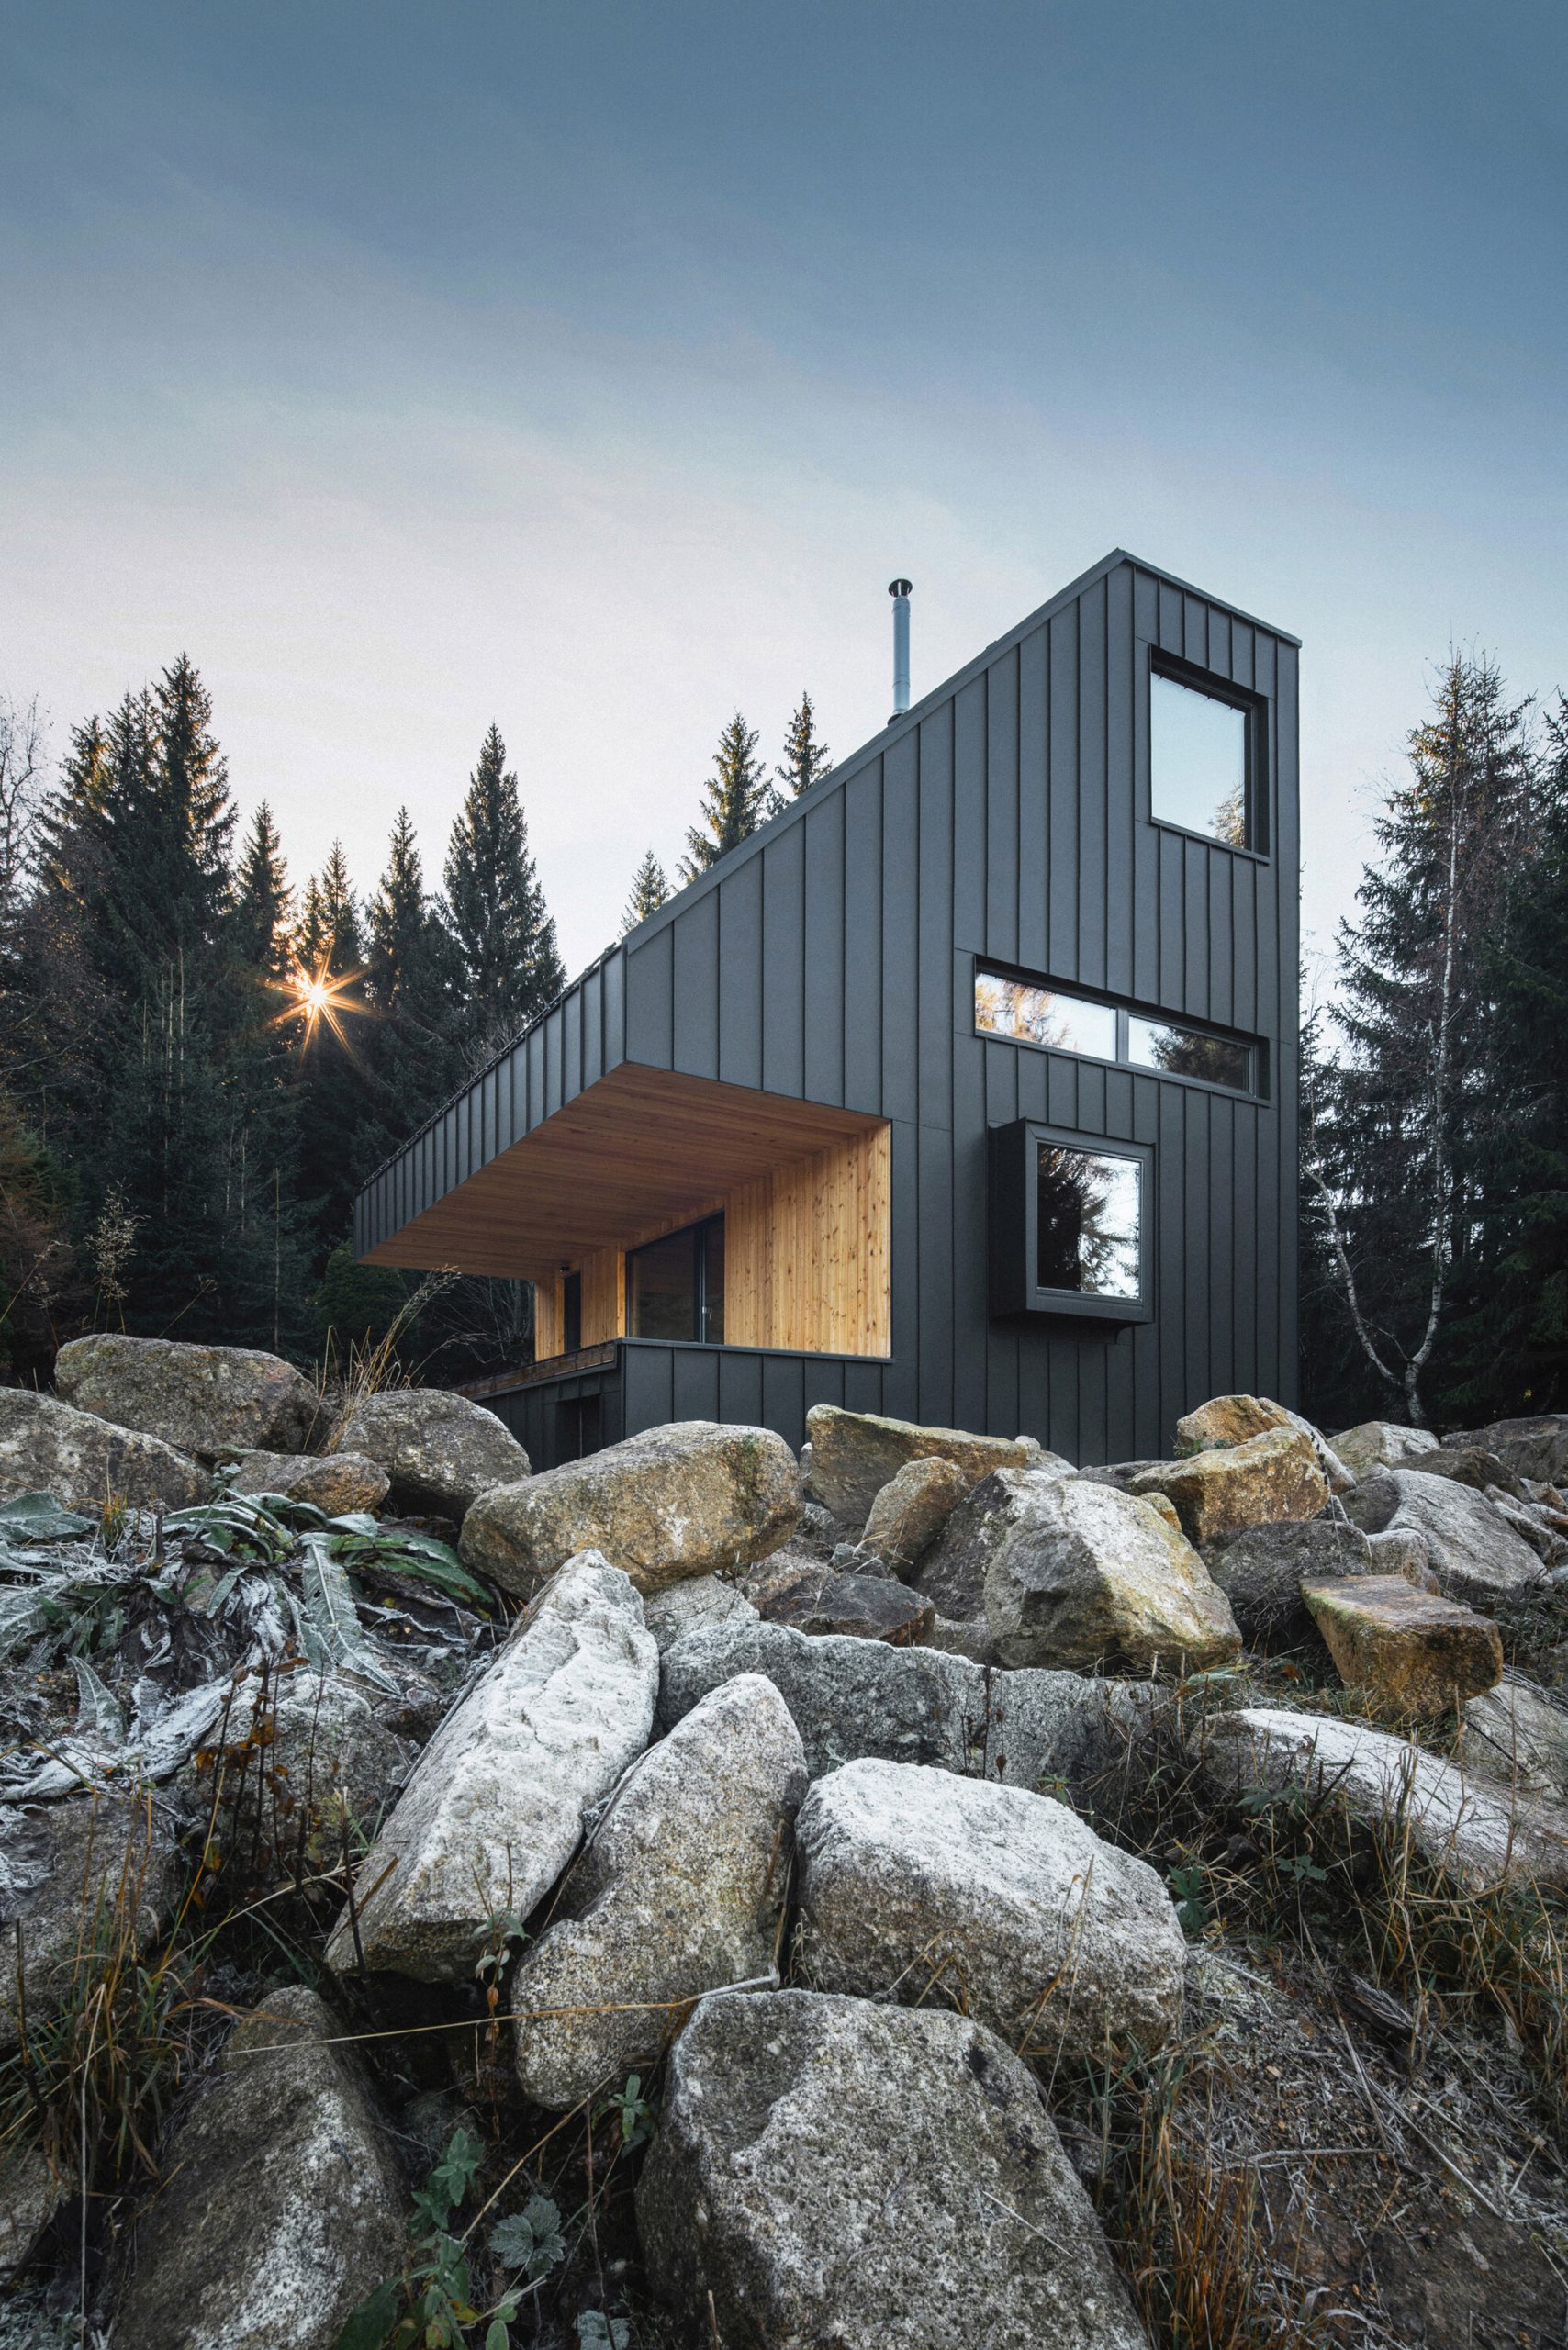 Weekend House by New How is made from CLT timber panels